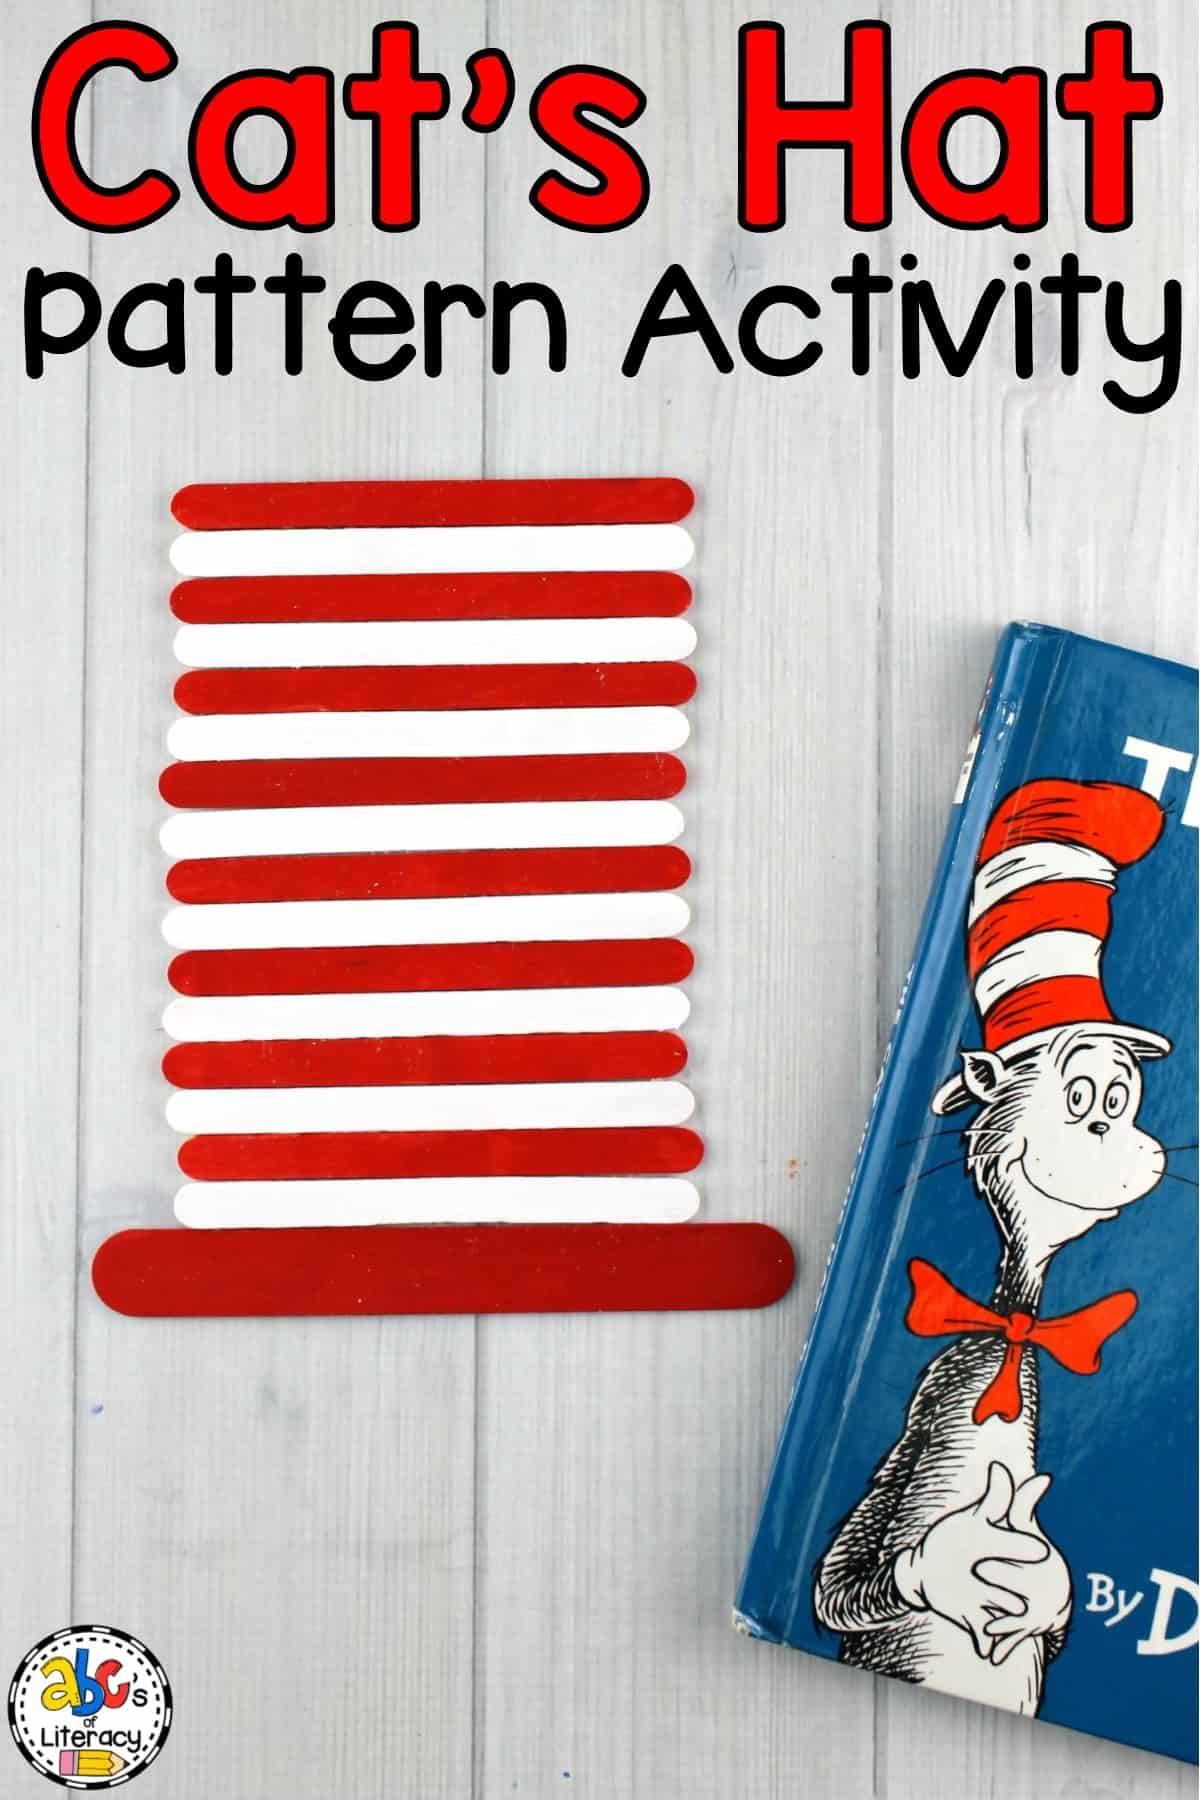 The Cat In The Hat, The Cat's Hat Pattern Activity, Pattern Activity, The Cat In The Hat Pattern Activity, Math Center, Preschool Center